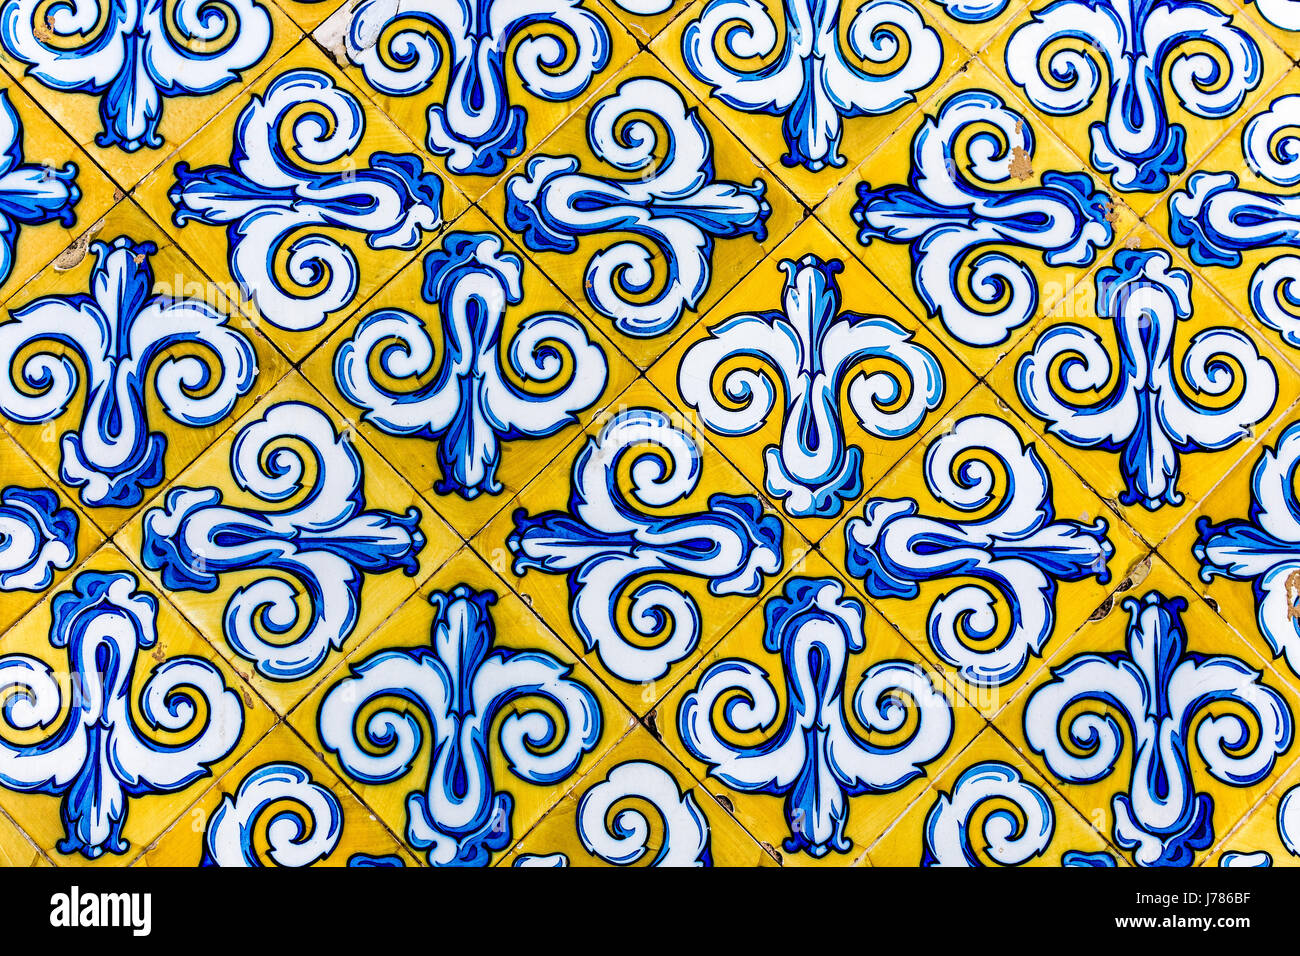 Colorful Vintage Style Ceramic Tile Pattern Texture and Background ...